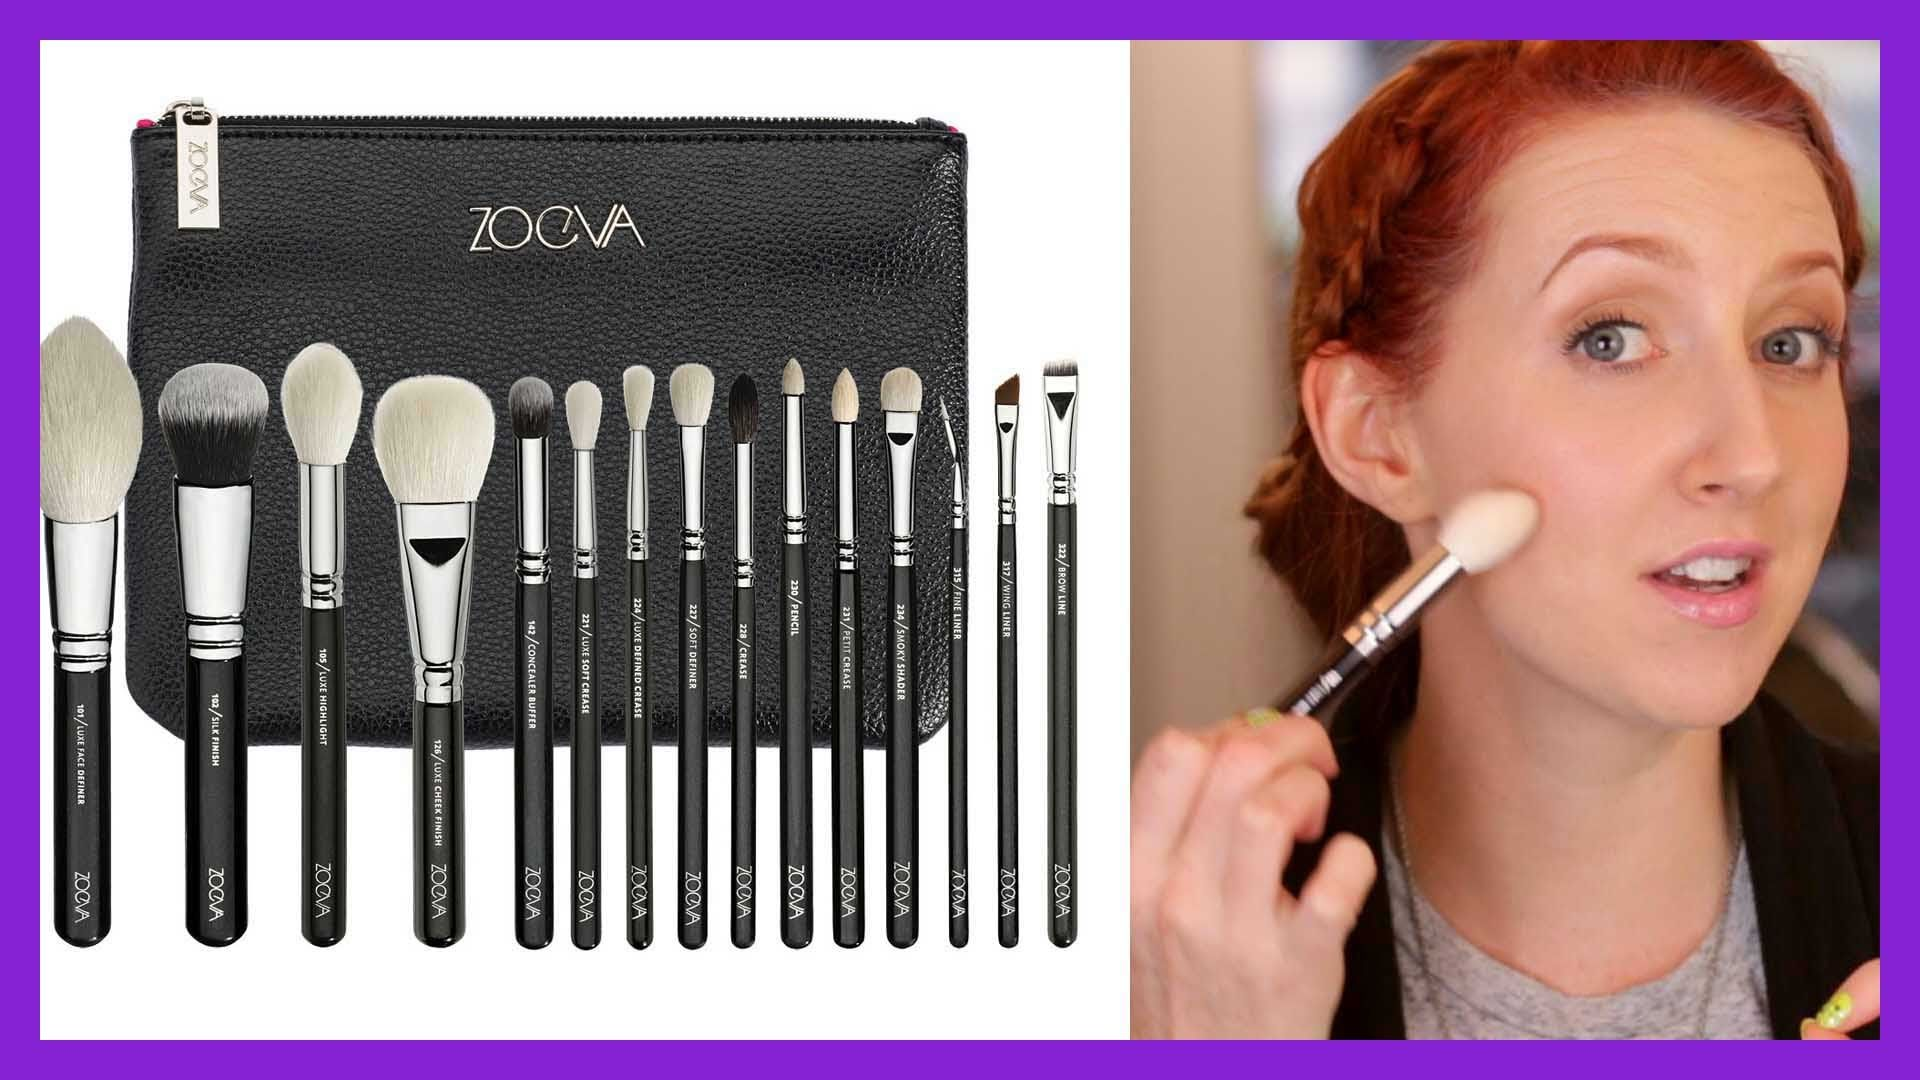 Zoeva Luxe Makeup Brush Review (With images) Makeup